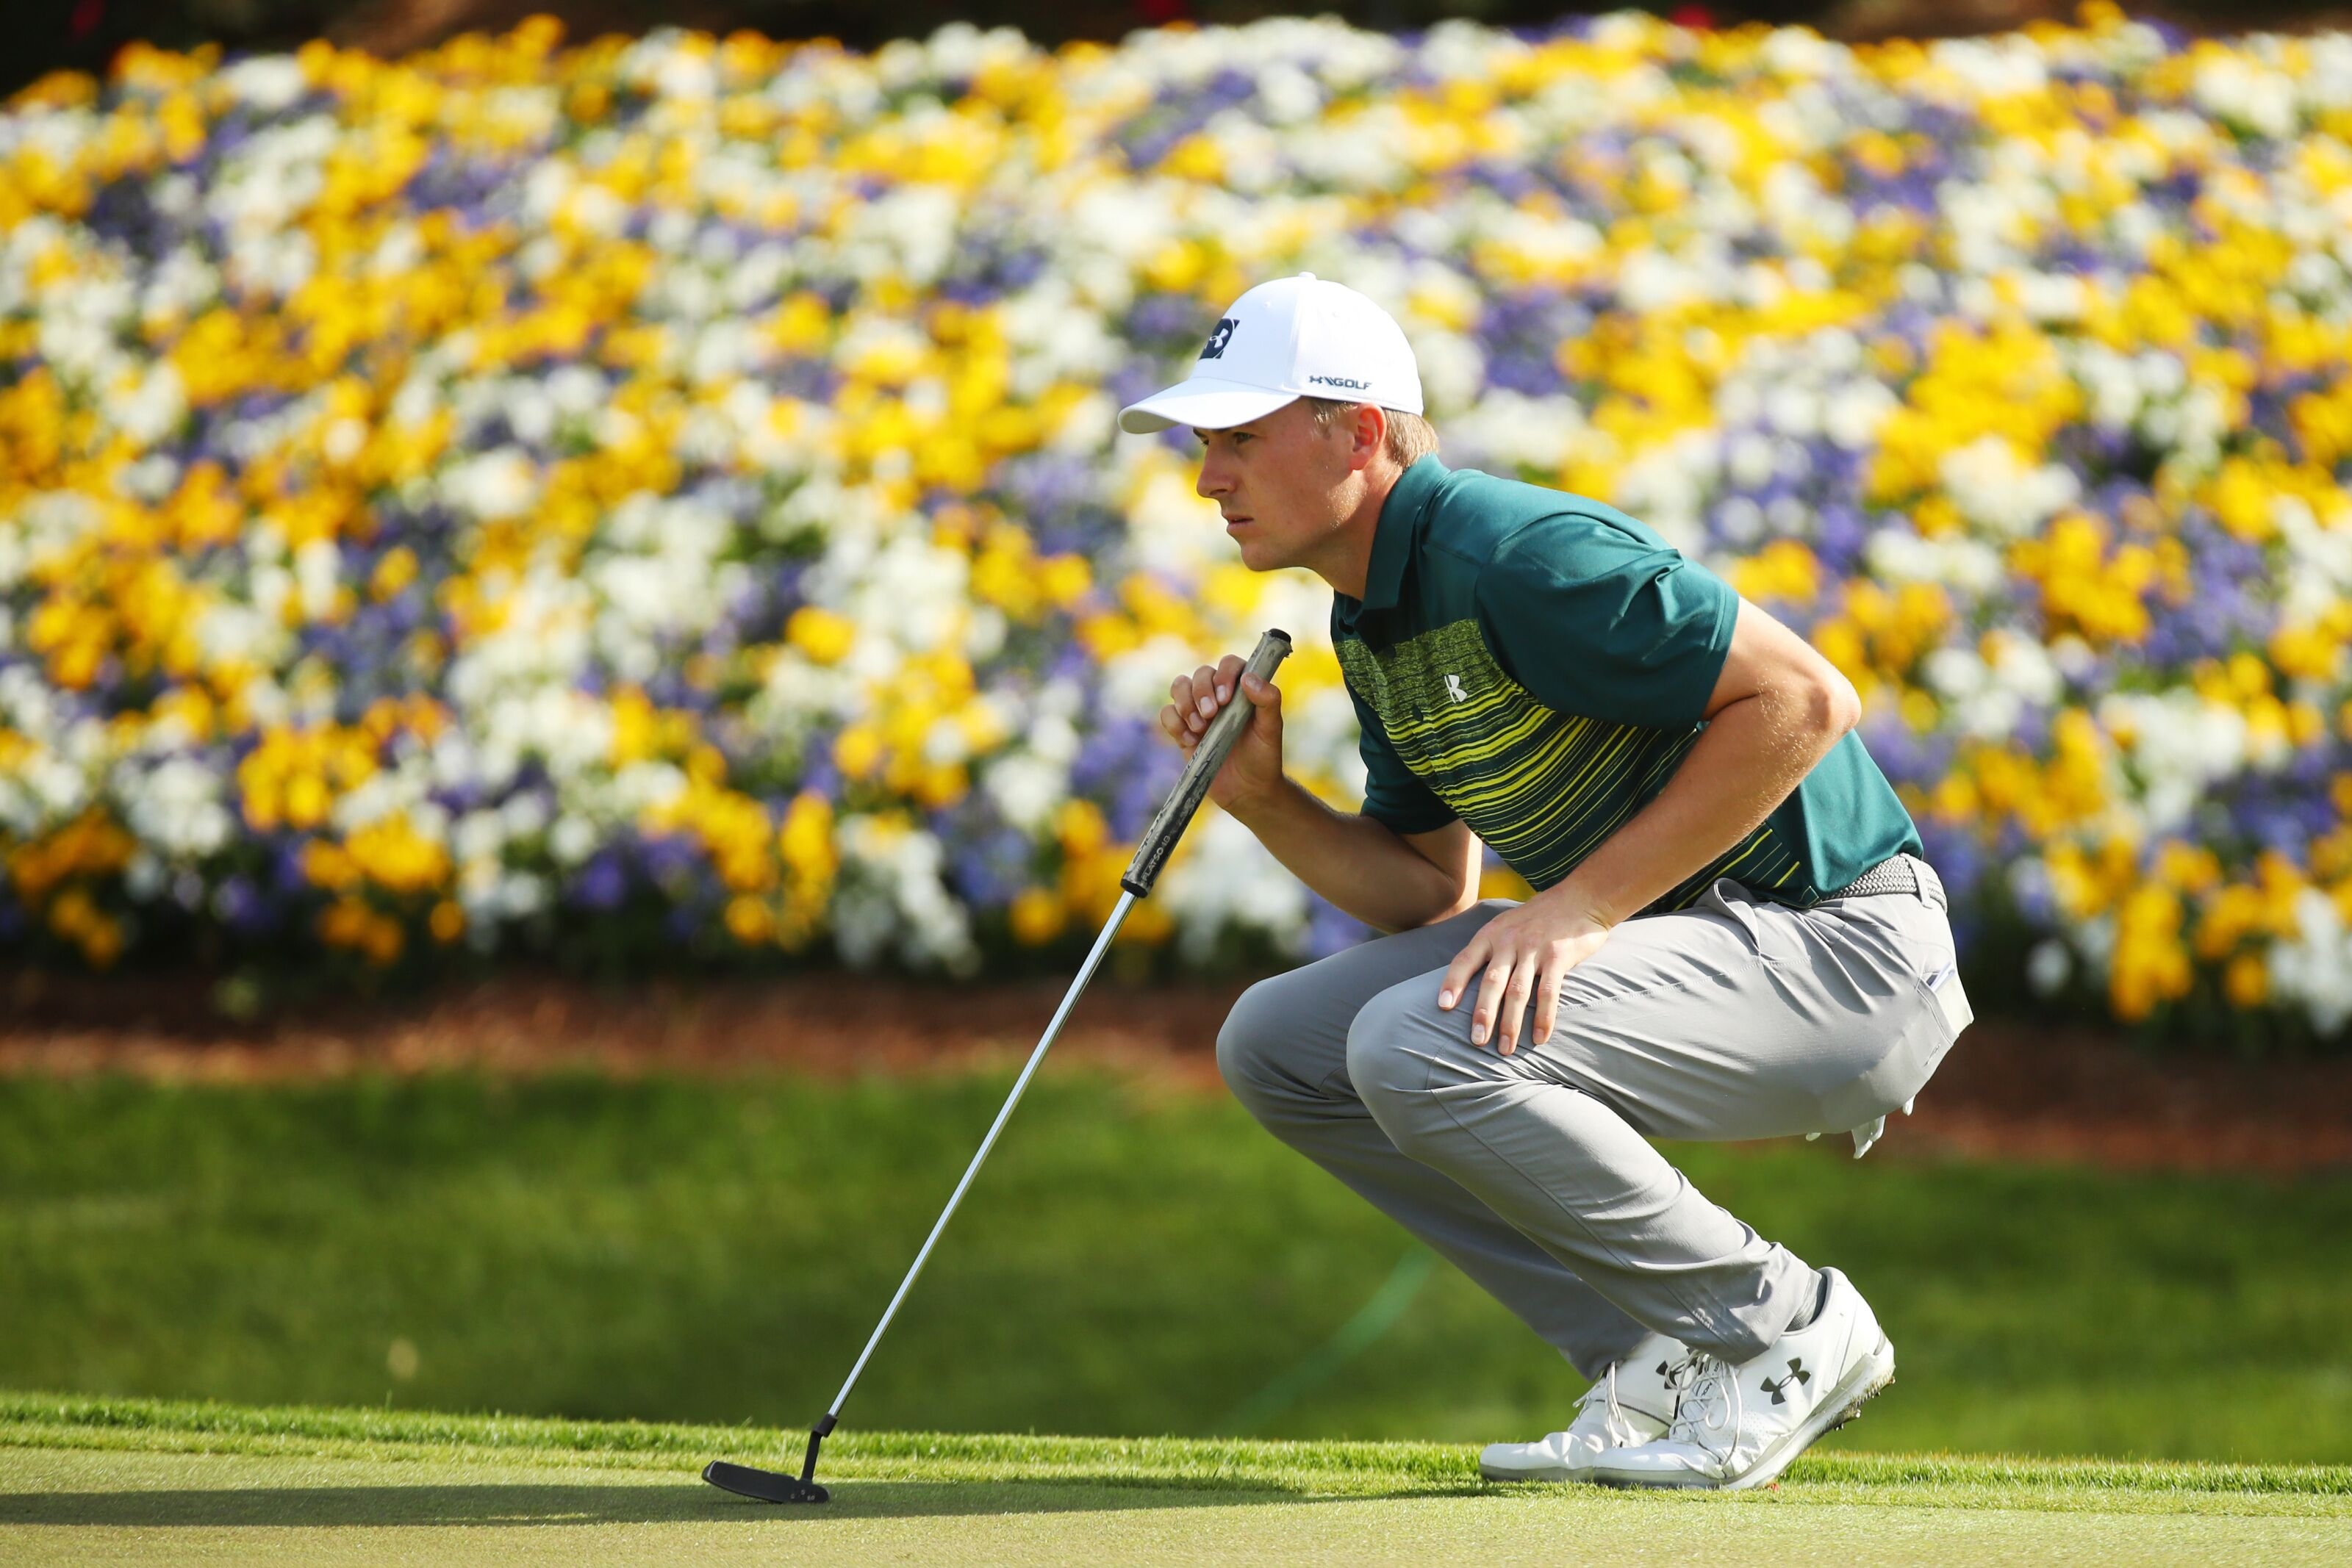 Jordan Spieth: Texas swing could provide needed boost before the Masters